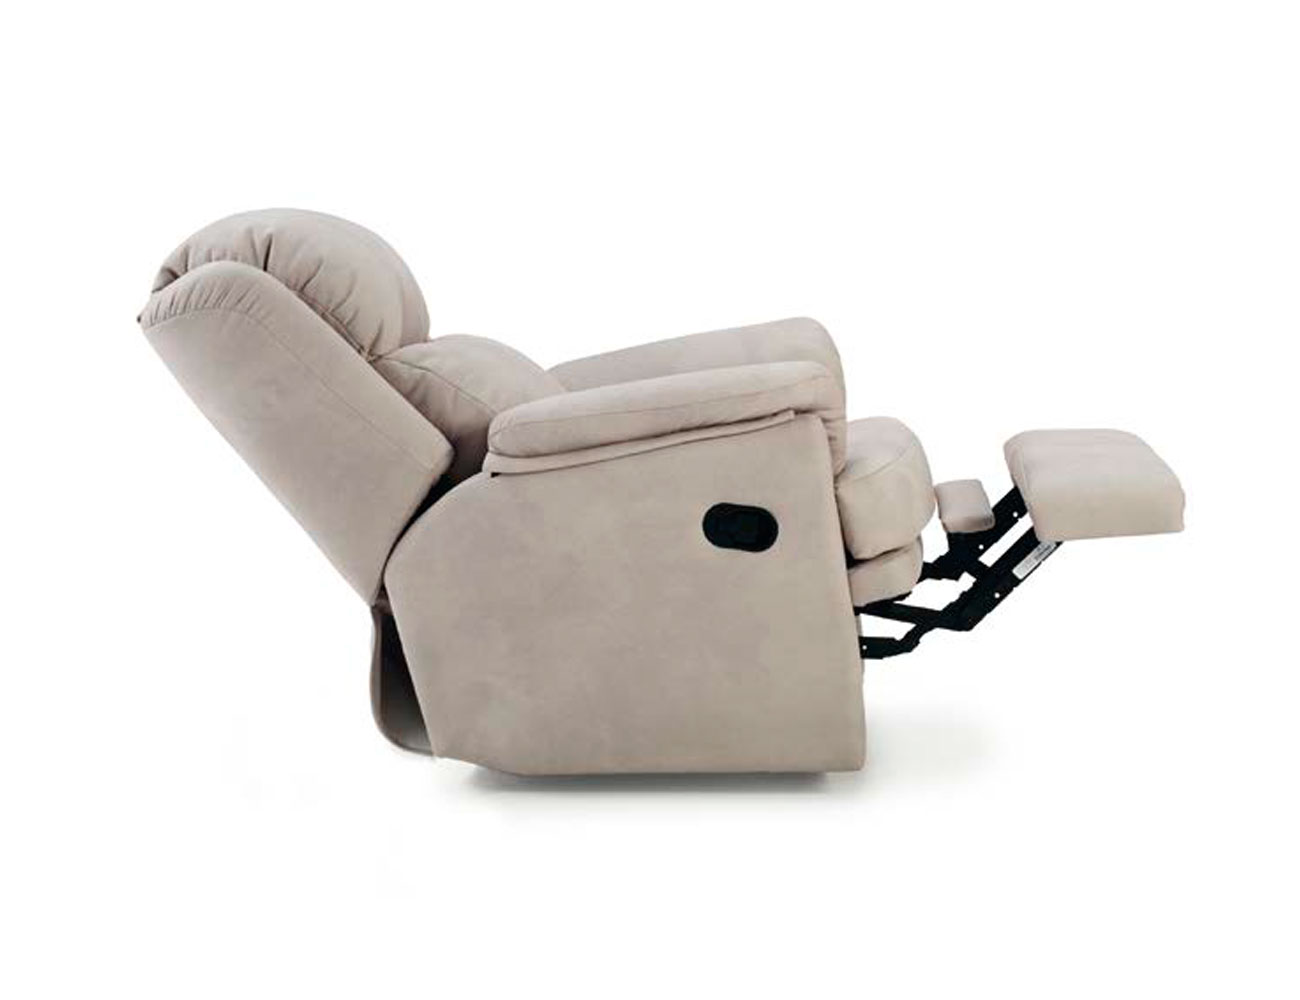 Sillon relax manual palanca esther 110